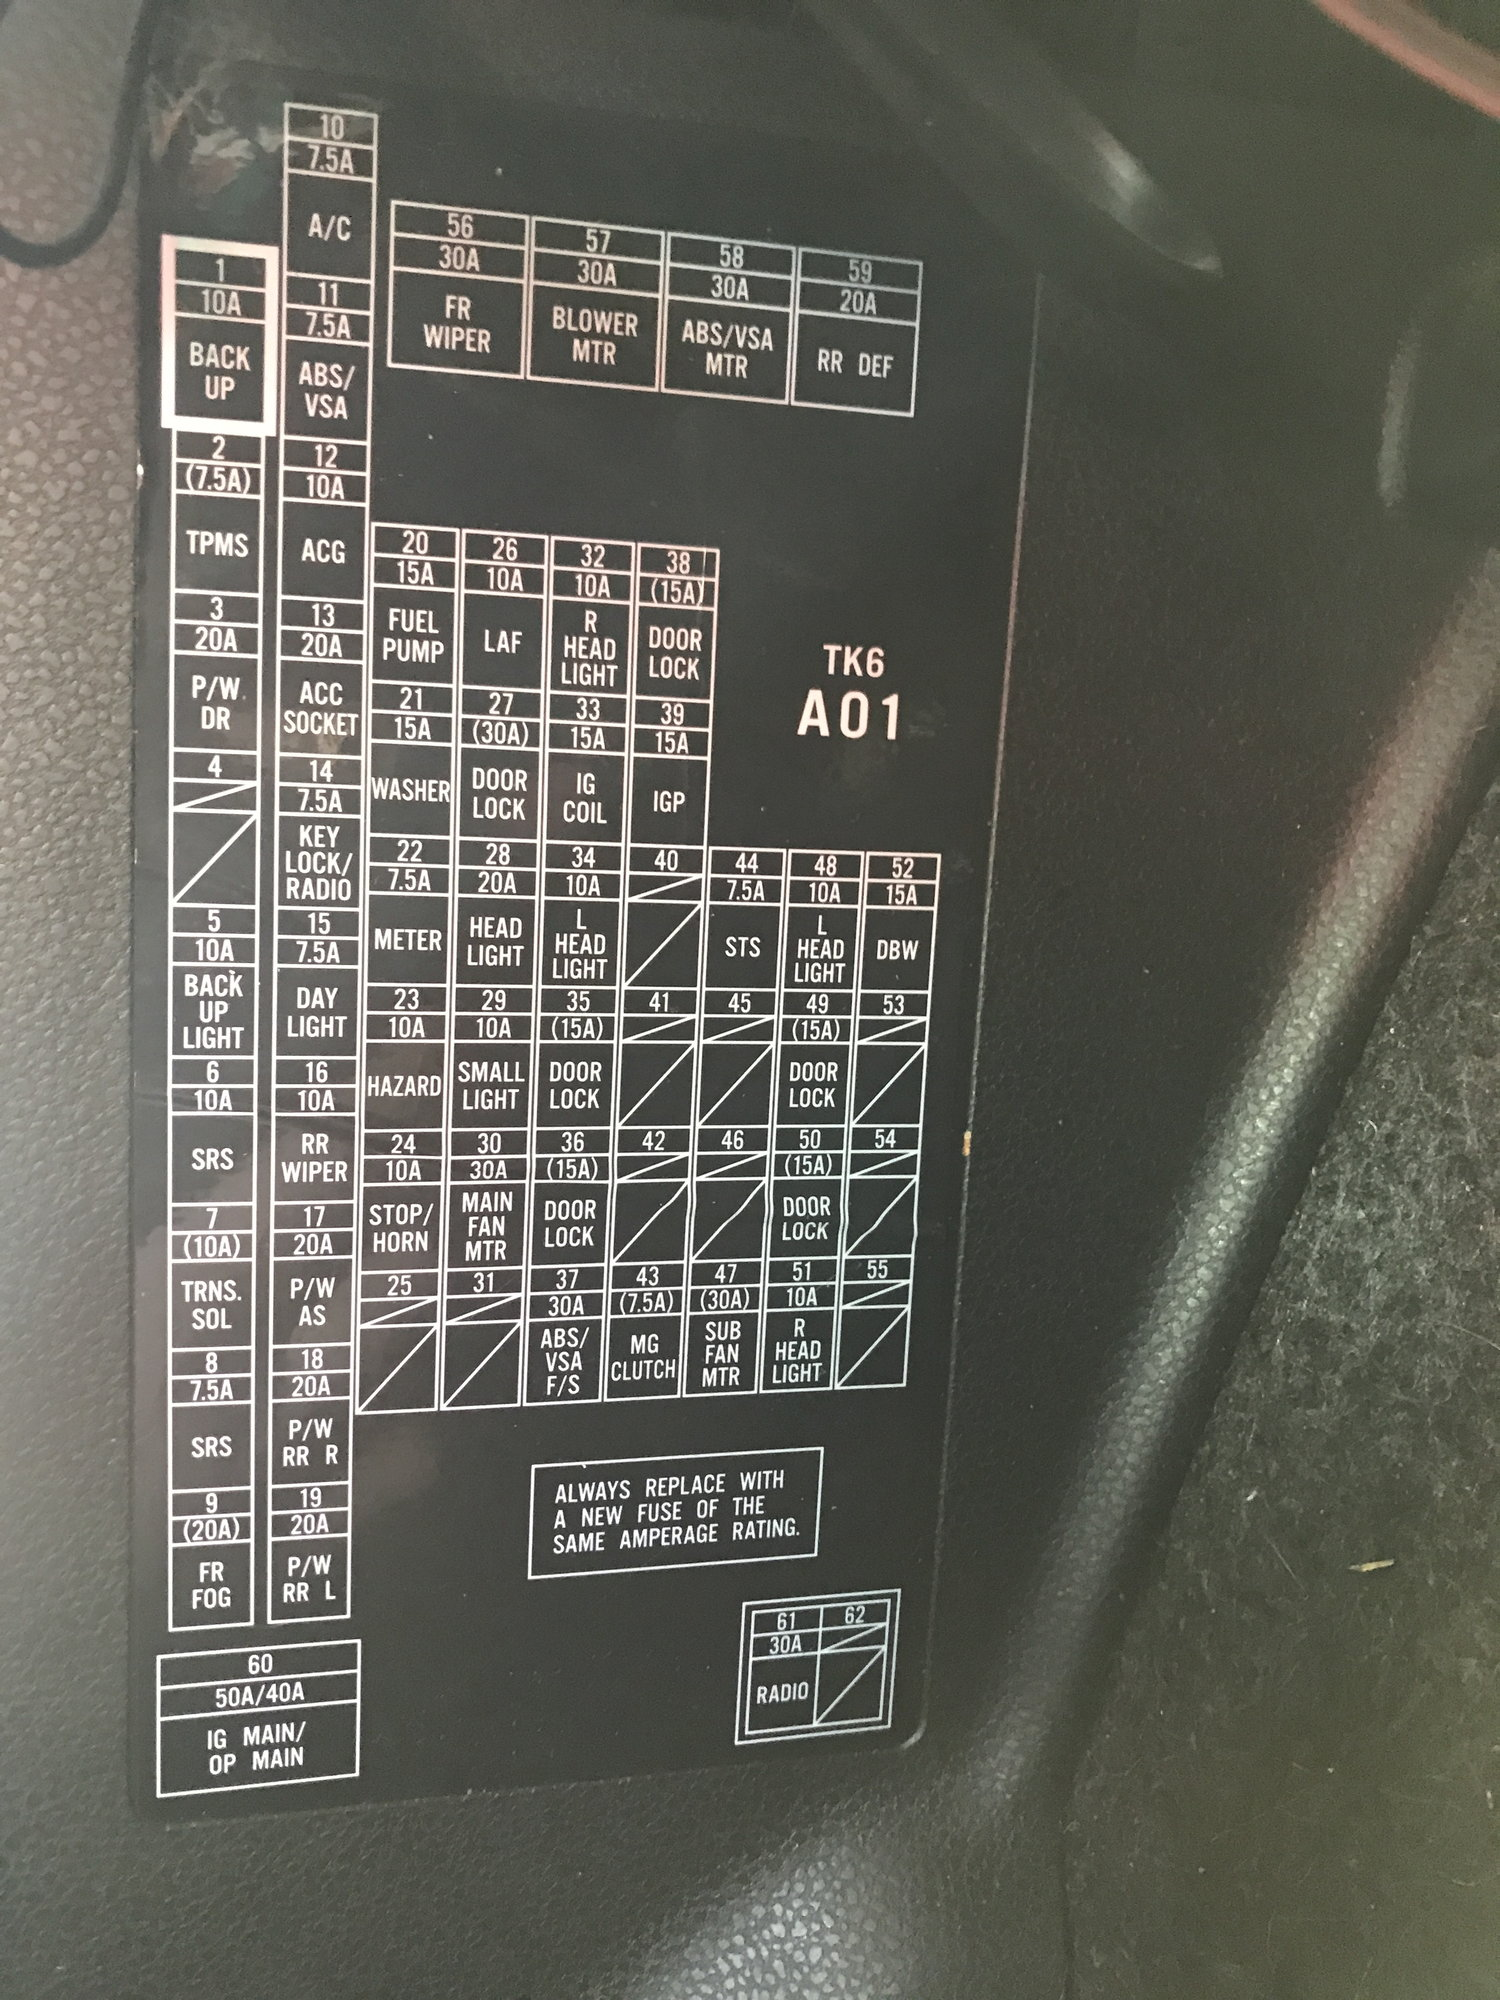 hight resolution of  interpret and cross match the interior fuse box diagram with the actual interior fuse box i went to my local honda and they couldn t help me